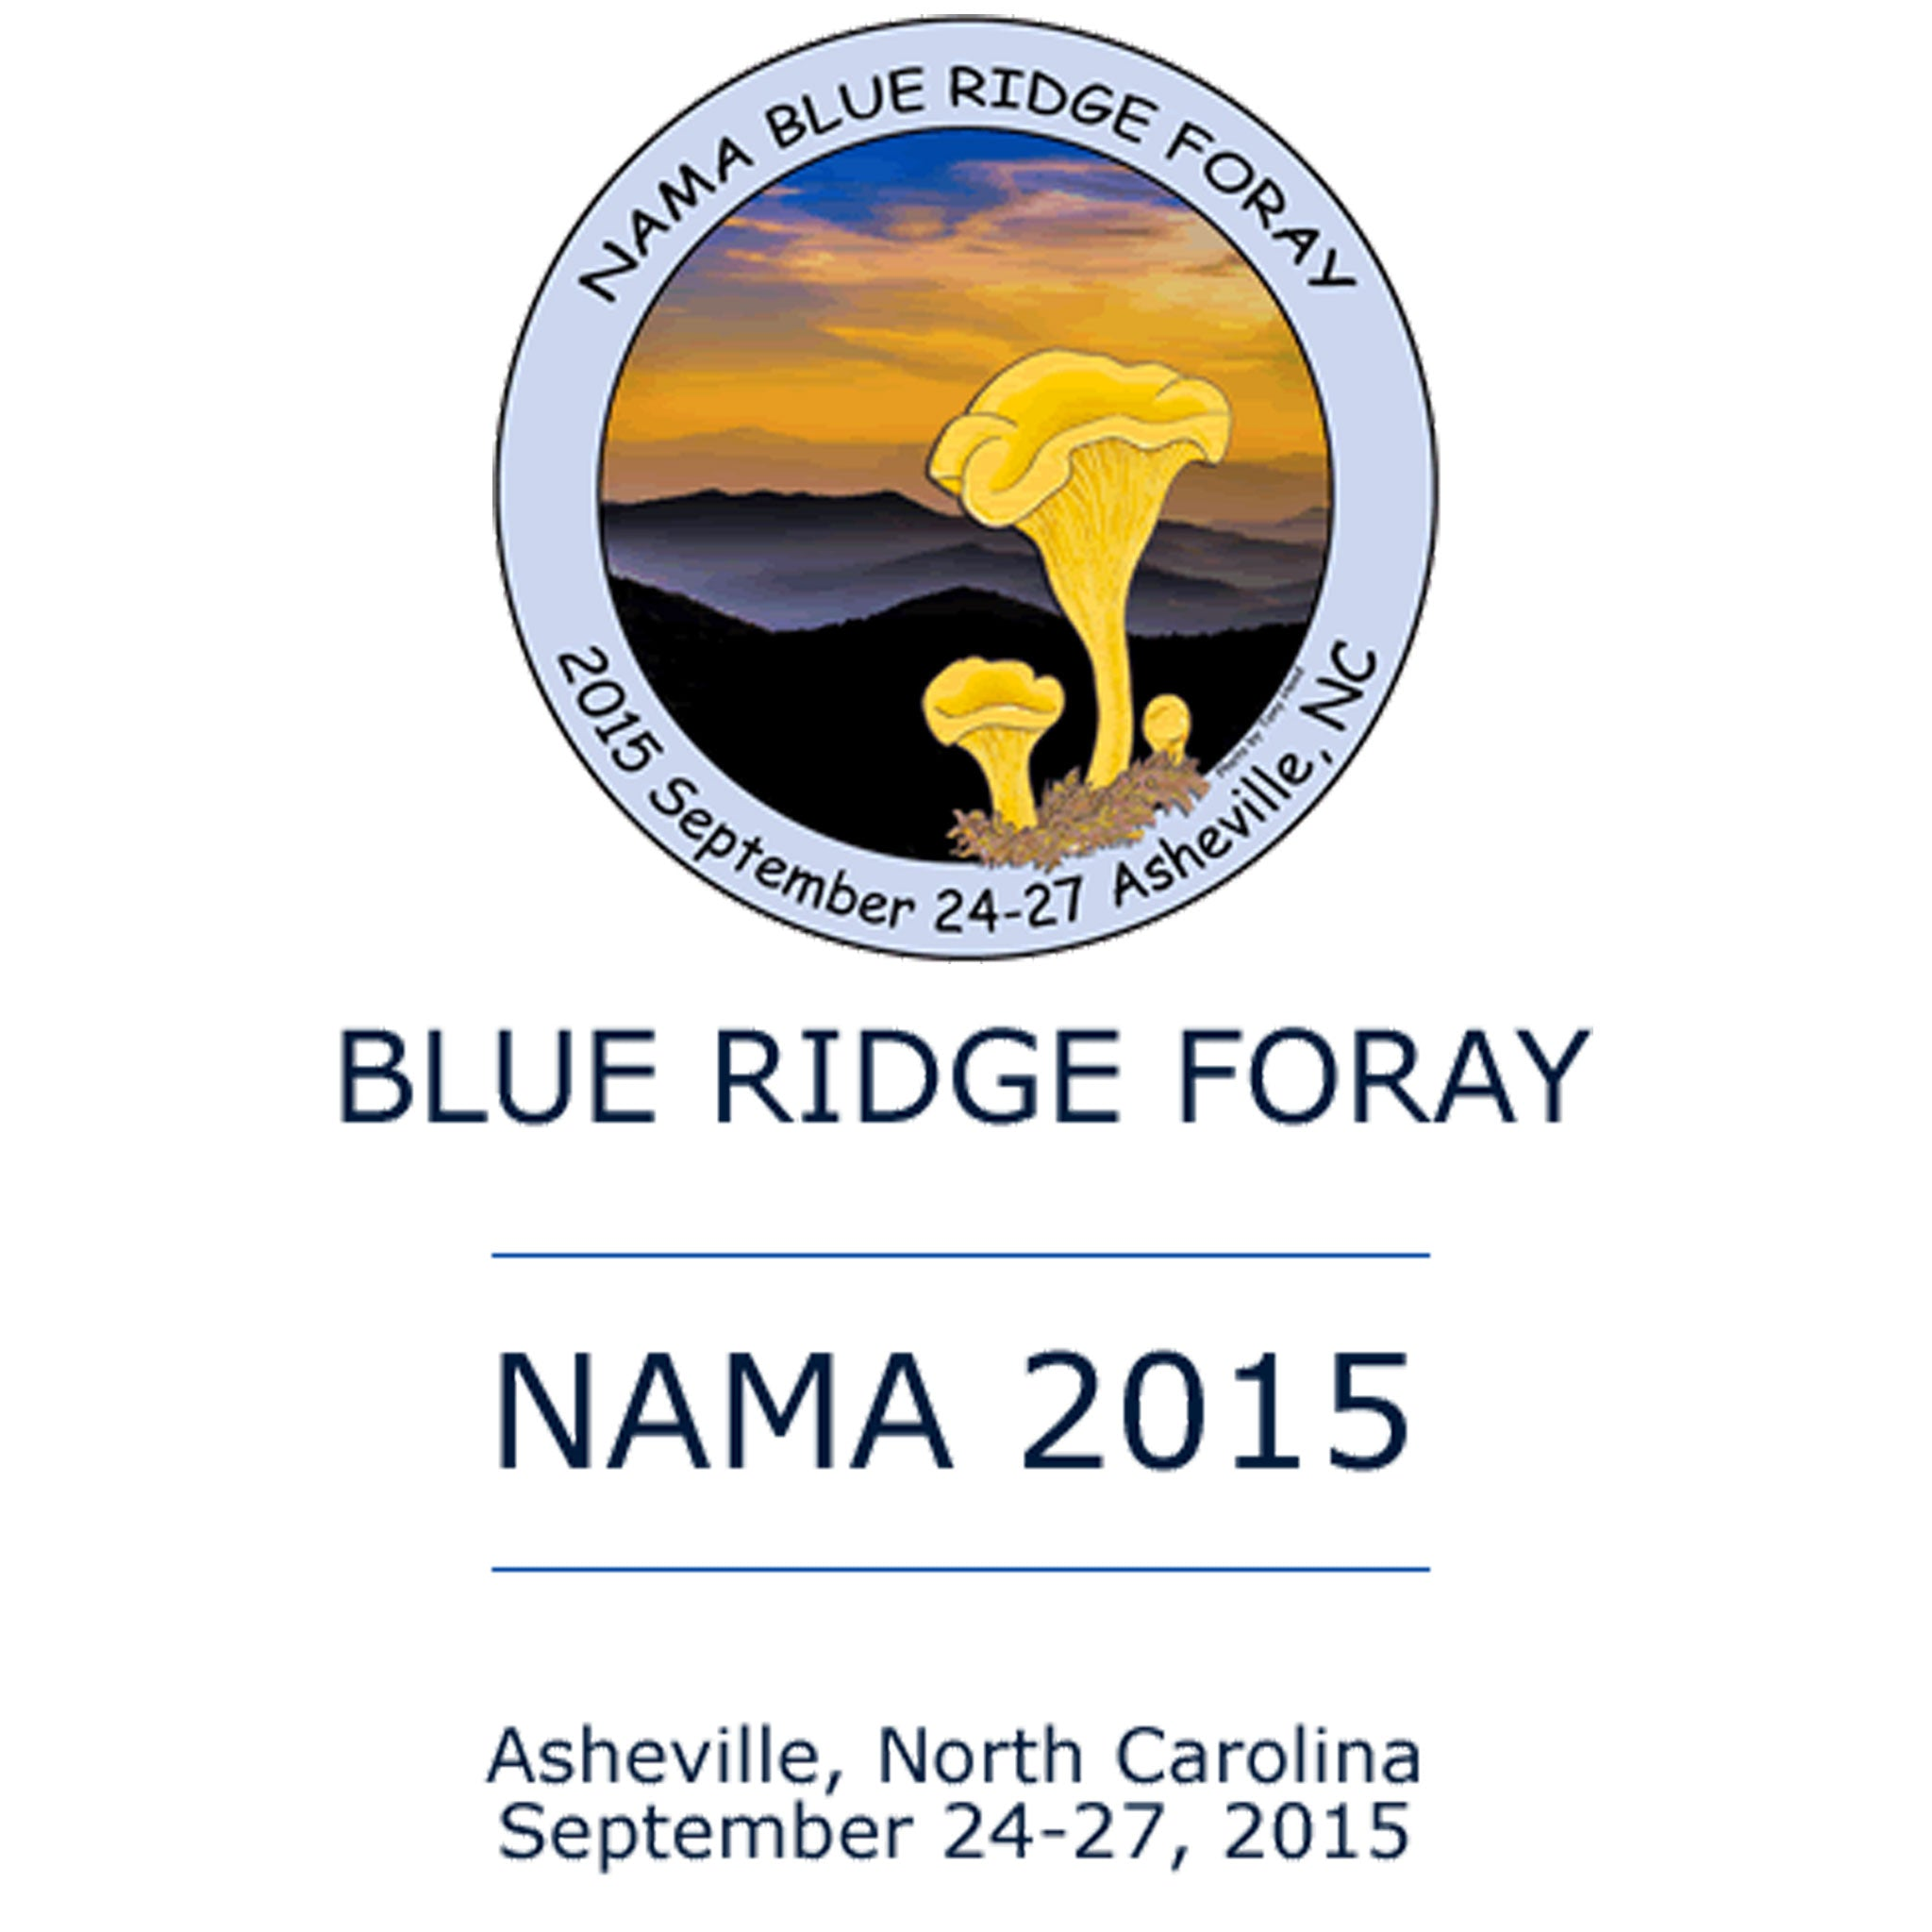 NAMA Blue Ridge Foray